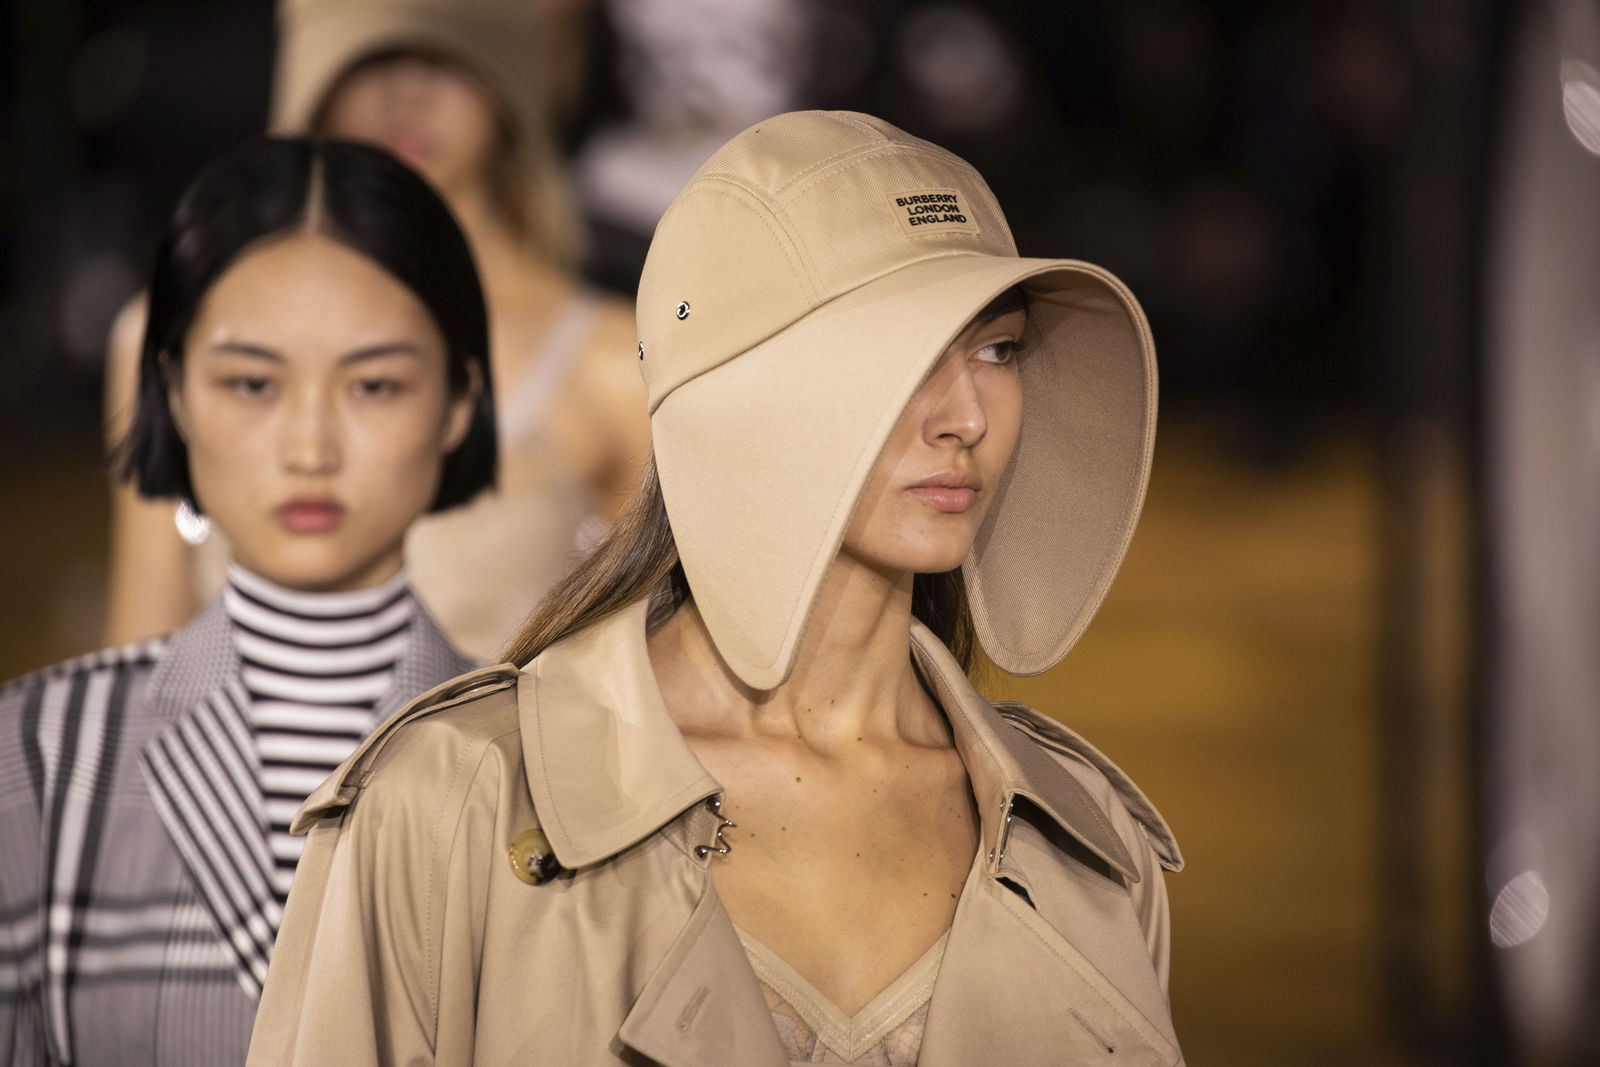 A model wears a creation by Burberry at the Spring/Summer 2020 fashion week runway show in London, Monday, Sept. 16, 2019. (Photo by Vianney Le Caer/Invision/AP)